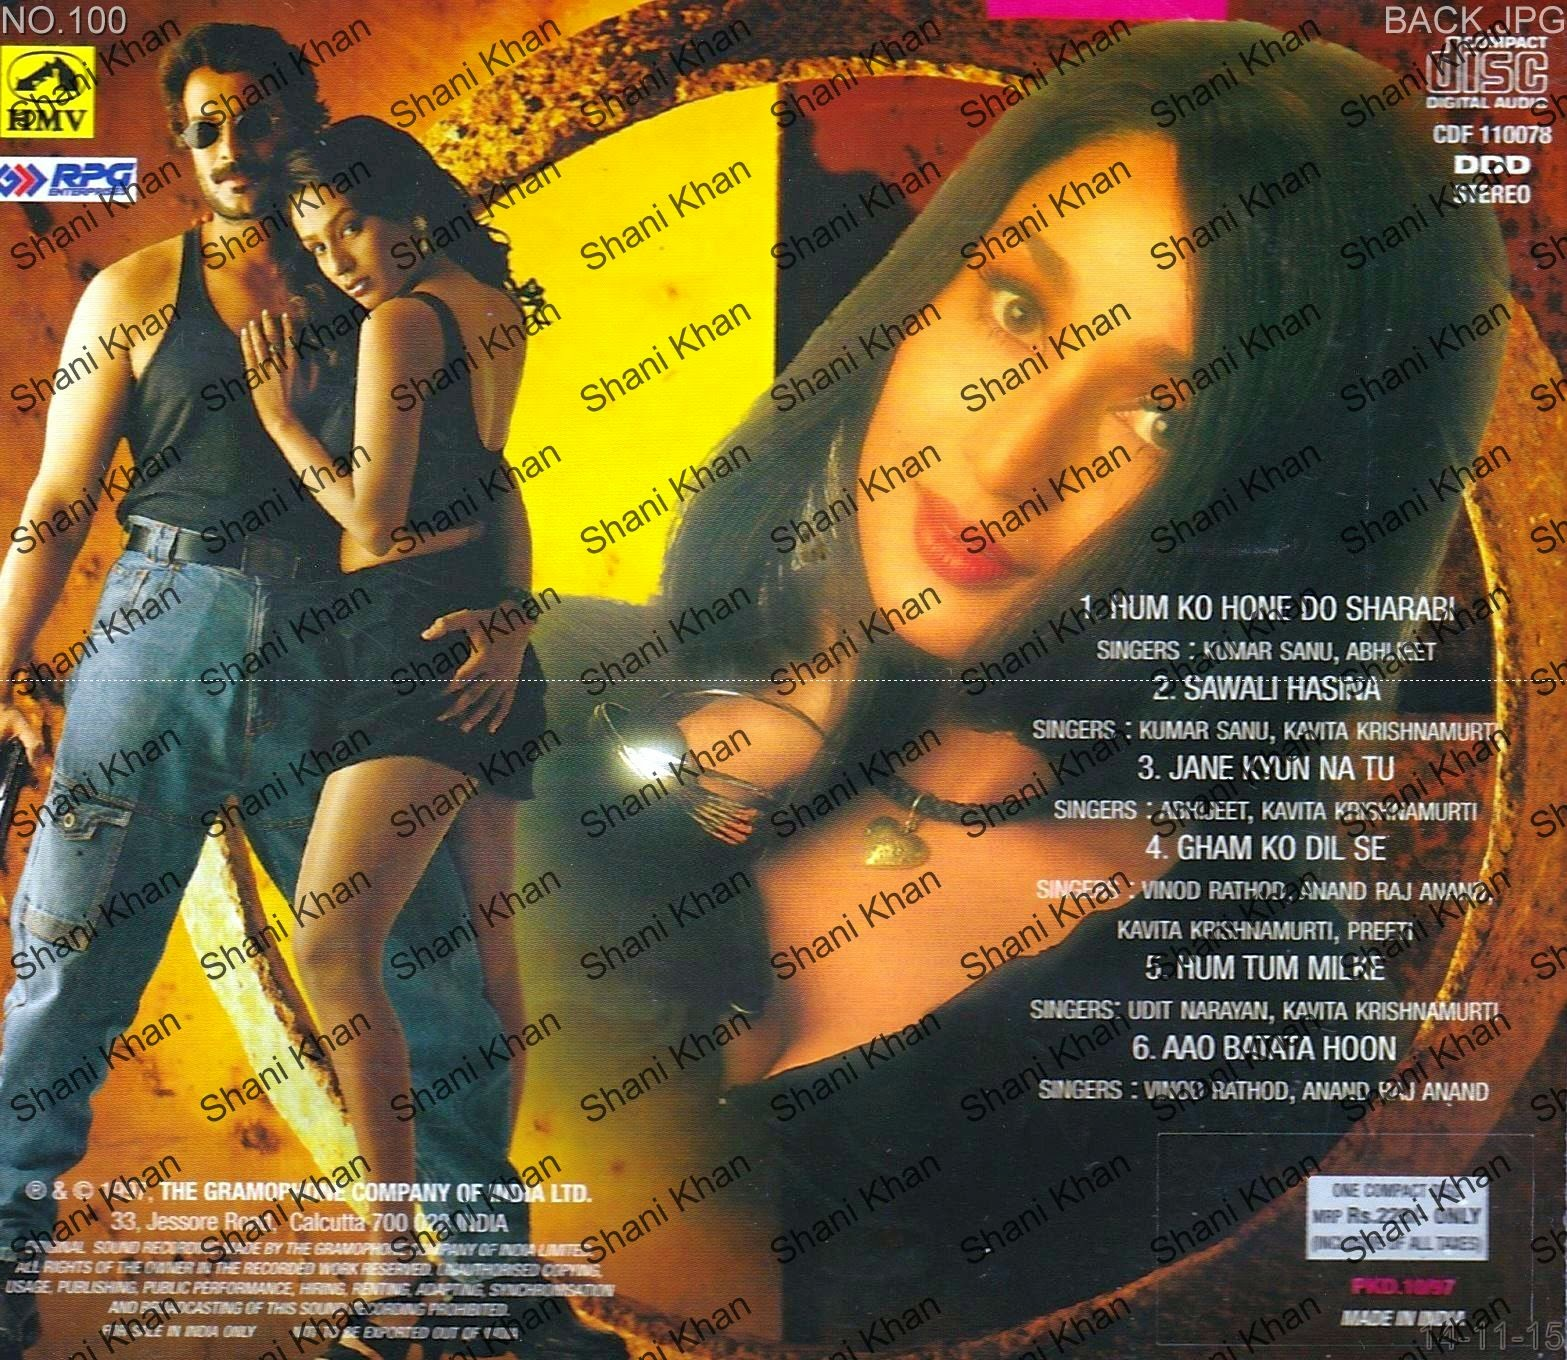 Koi Puchamera Dil Seee Download: Bollywood Music A To Z Cds. Visit To Download Http